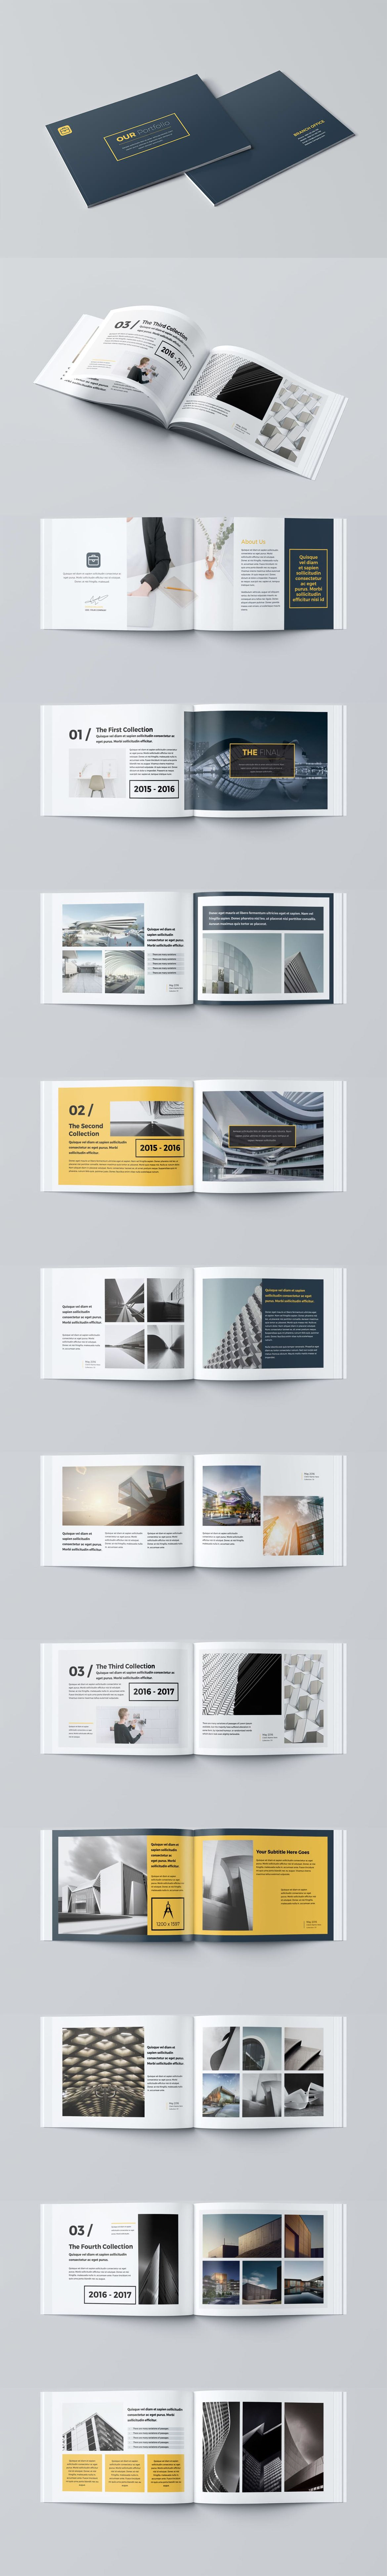 Our Portfolio Architecture 24 Pages A4 & A5 Template ... Architecture Portfolio Layout Indesign